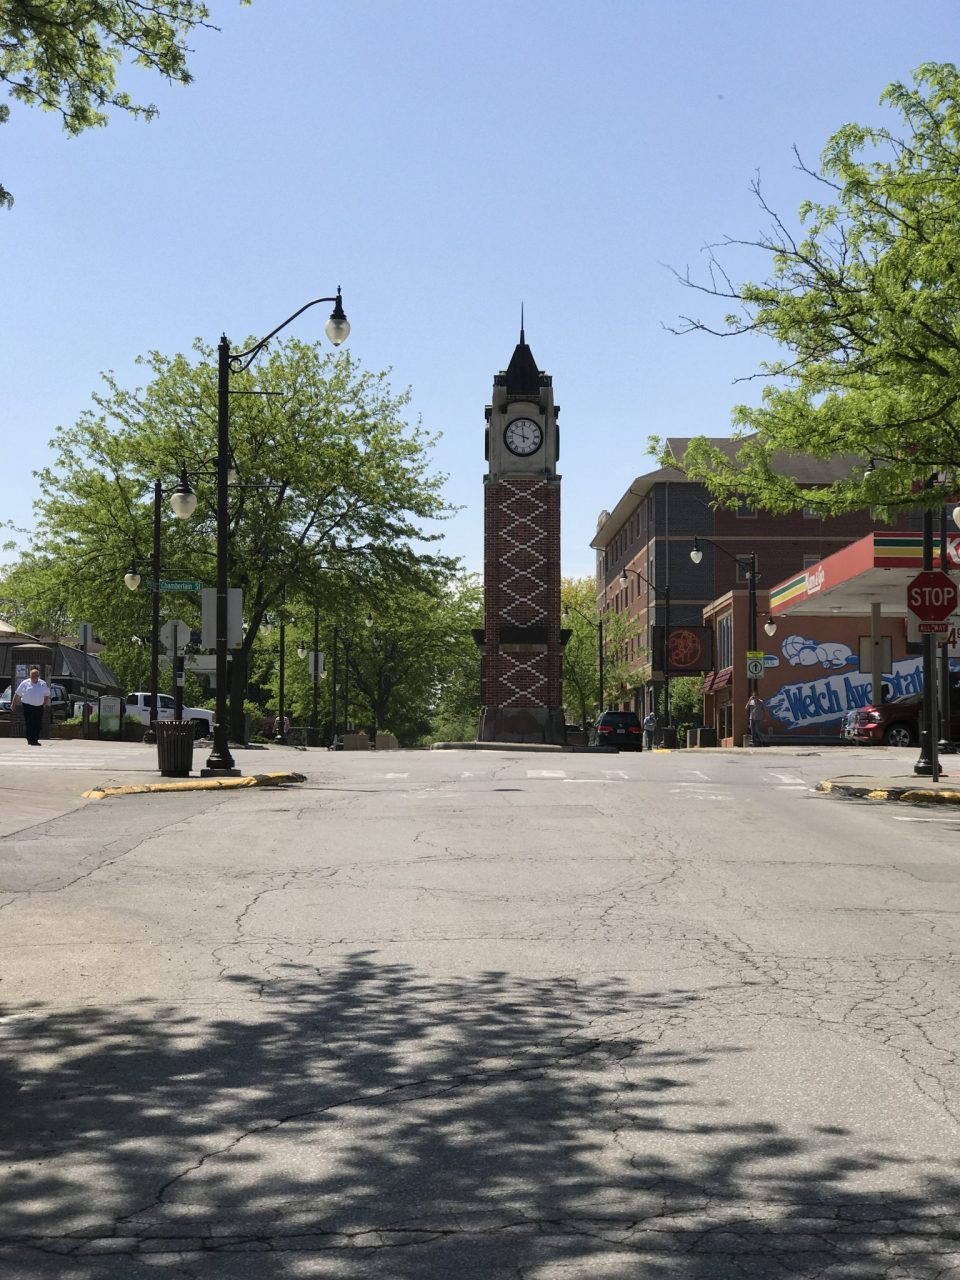 Street shot with clock building and signs in Campus town, Iowa.